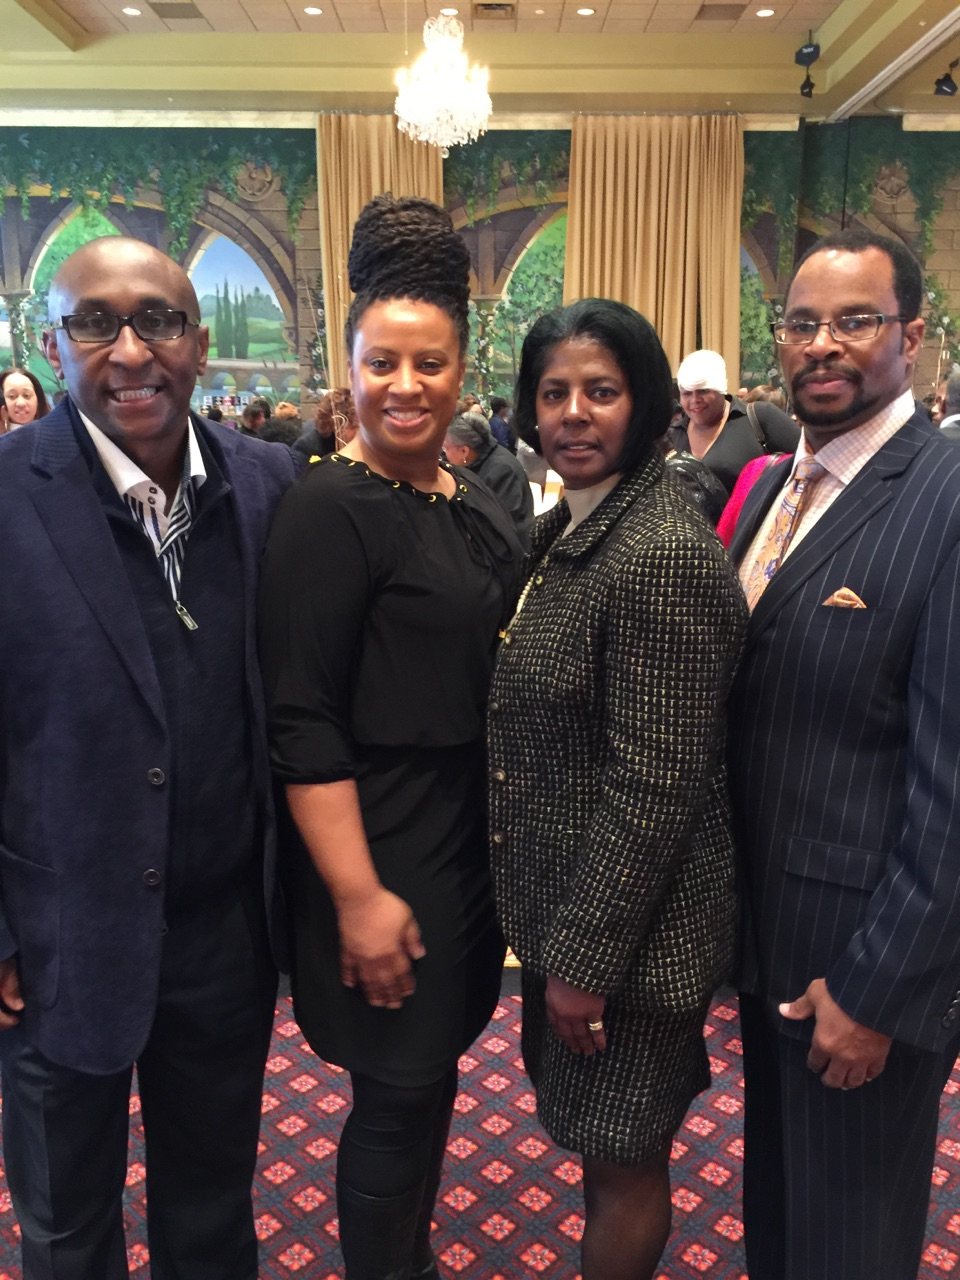 (From left to right) CEO Cedric Lancaster, Director of Communications Tonette Delk, BIG Pentagon Chapter President Honorable Mary K. Thomas, and Former National President of BIG, Gerald R. Reed. (Deputy Director, Engineering U.S. Army) - Jan. 2016 - Washington, DC.